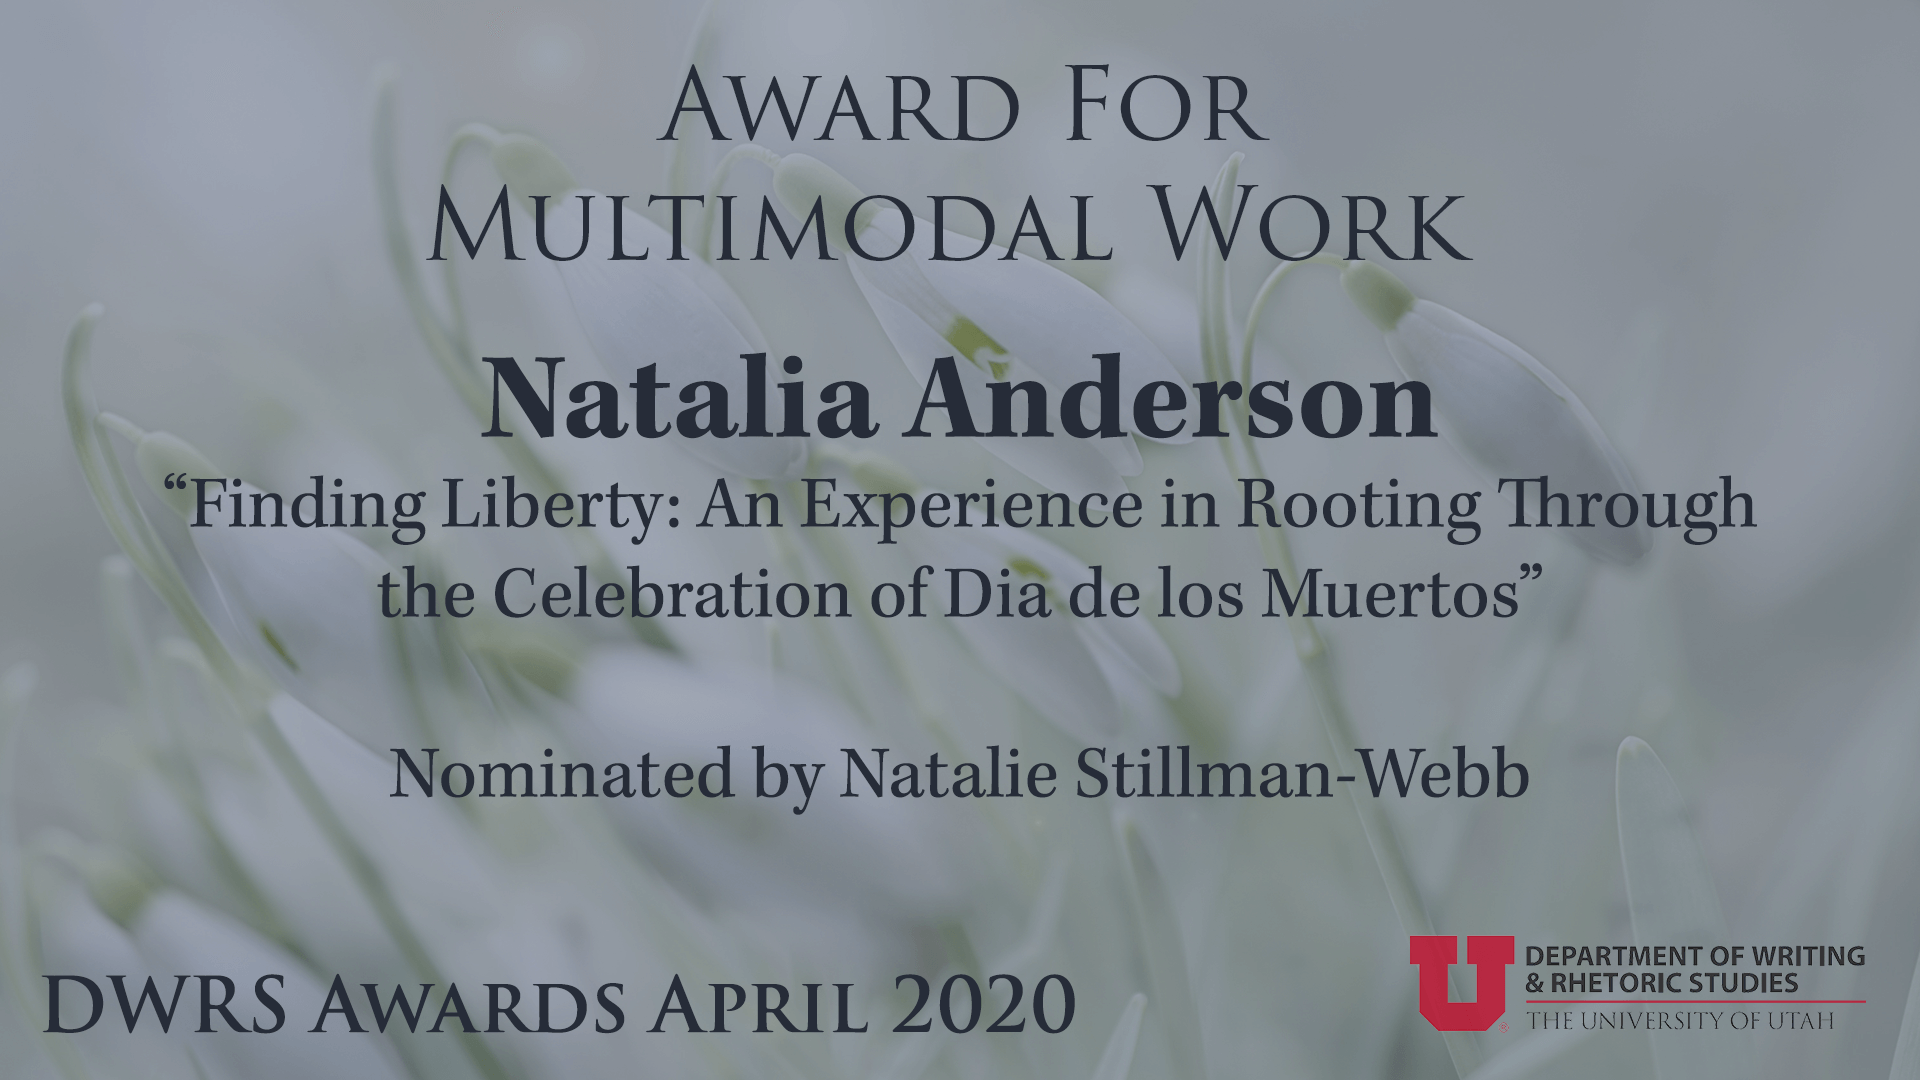 Award for Multimodal Work — Natalia Anderson